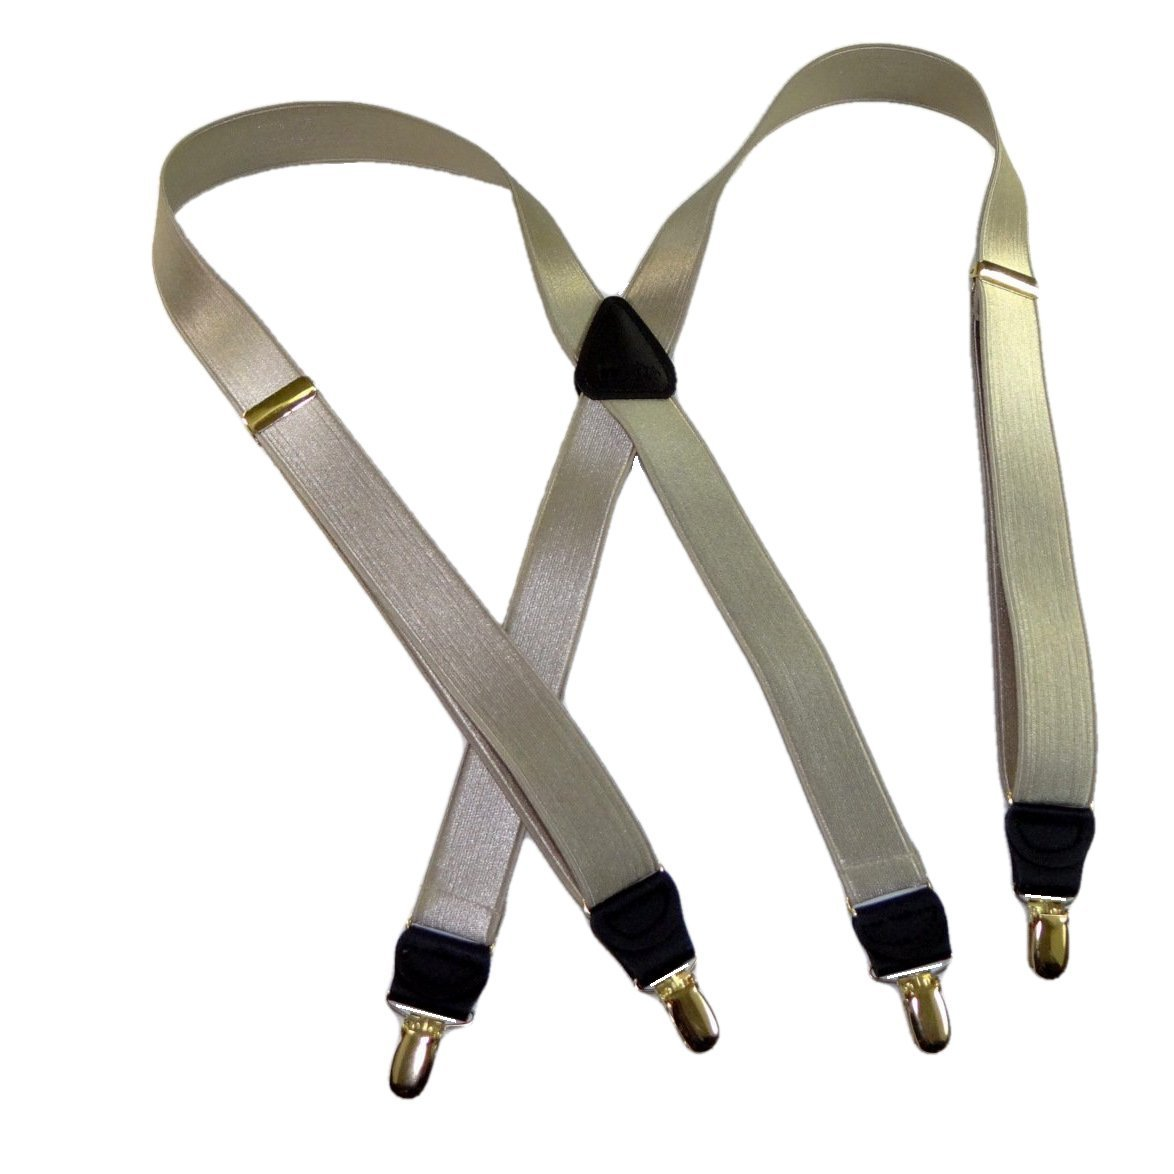 Holdup Brand XL Champagne Golden Tan Color Clip-on X-back Suspenders with Gold-tone No-slip Clips